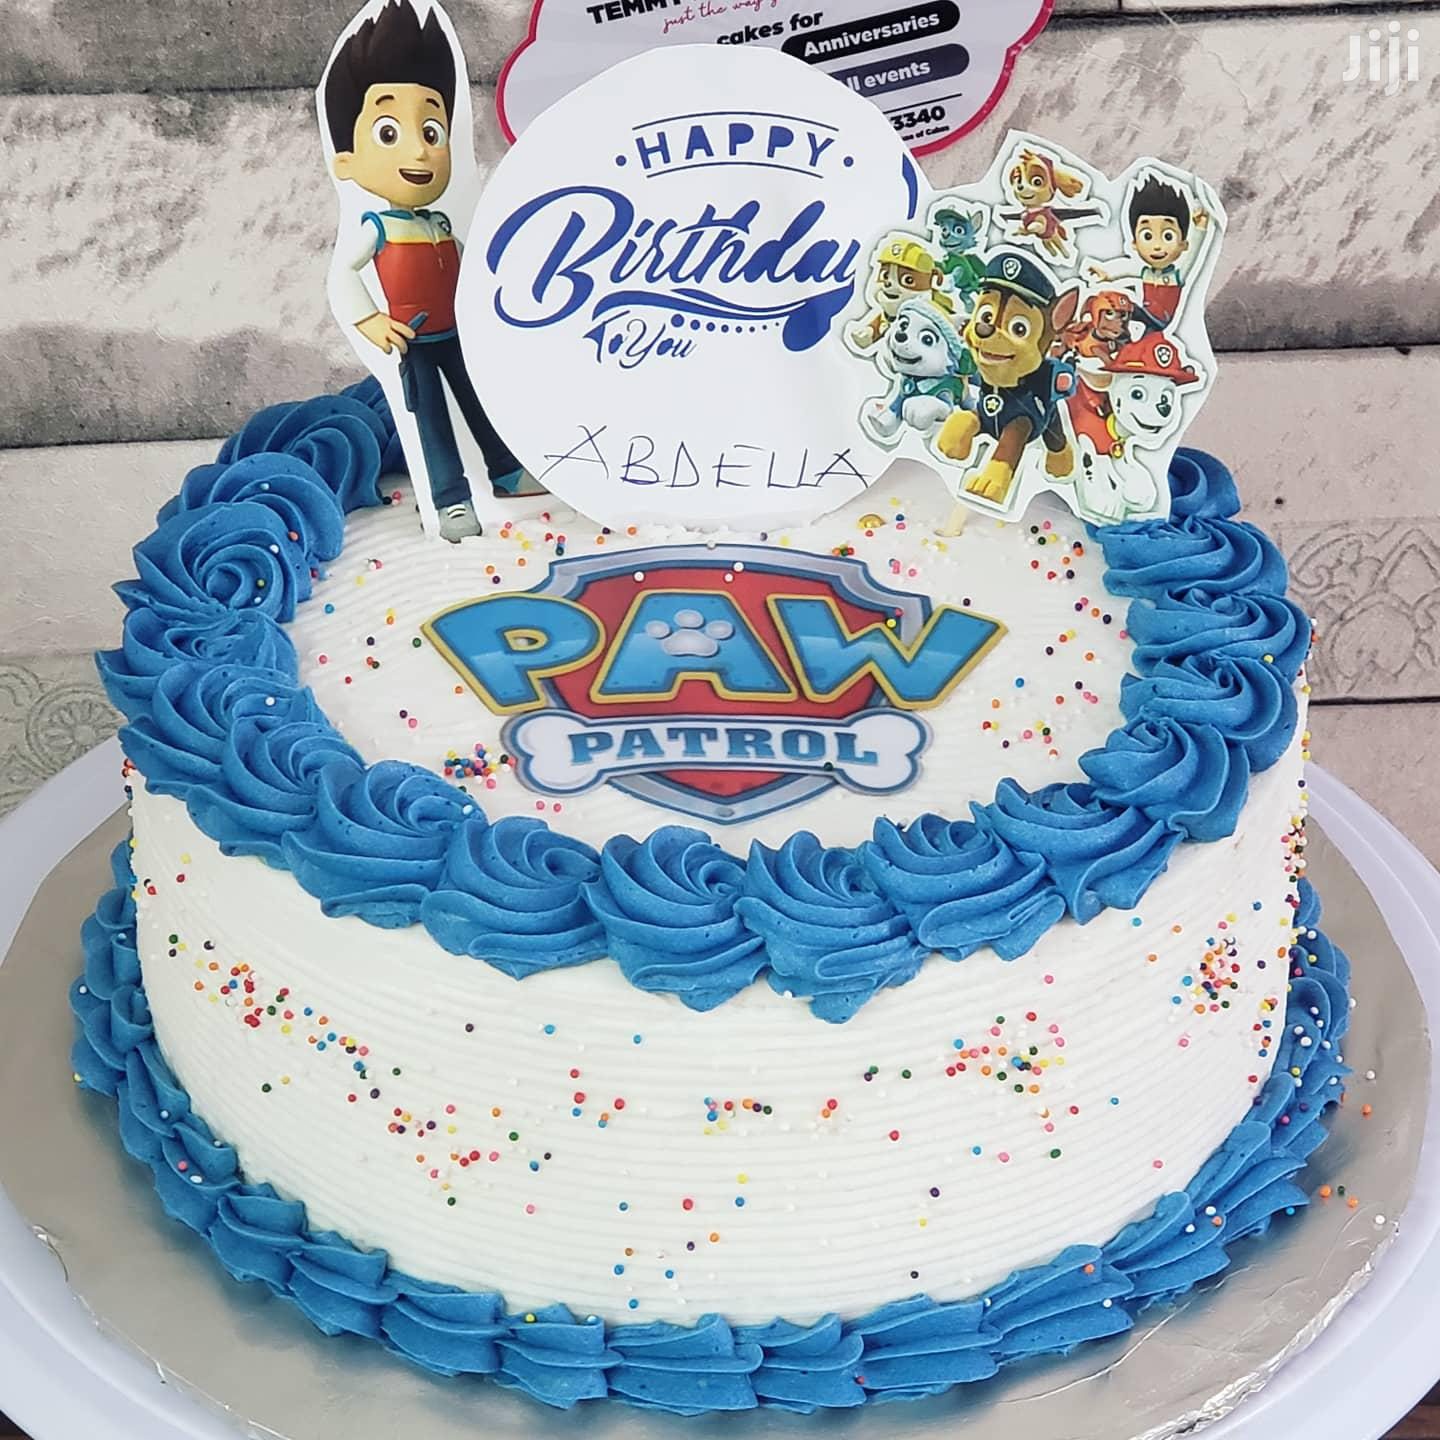 Birthday and Wedding Cake | Wedding Venues & Services for sale in Accra Metropolitan, Greater Accra, Ghana